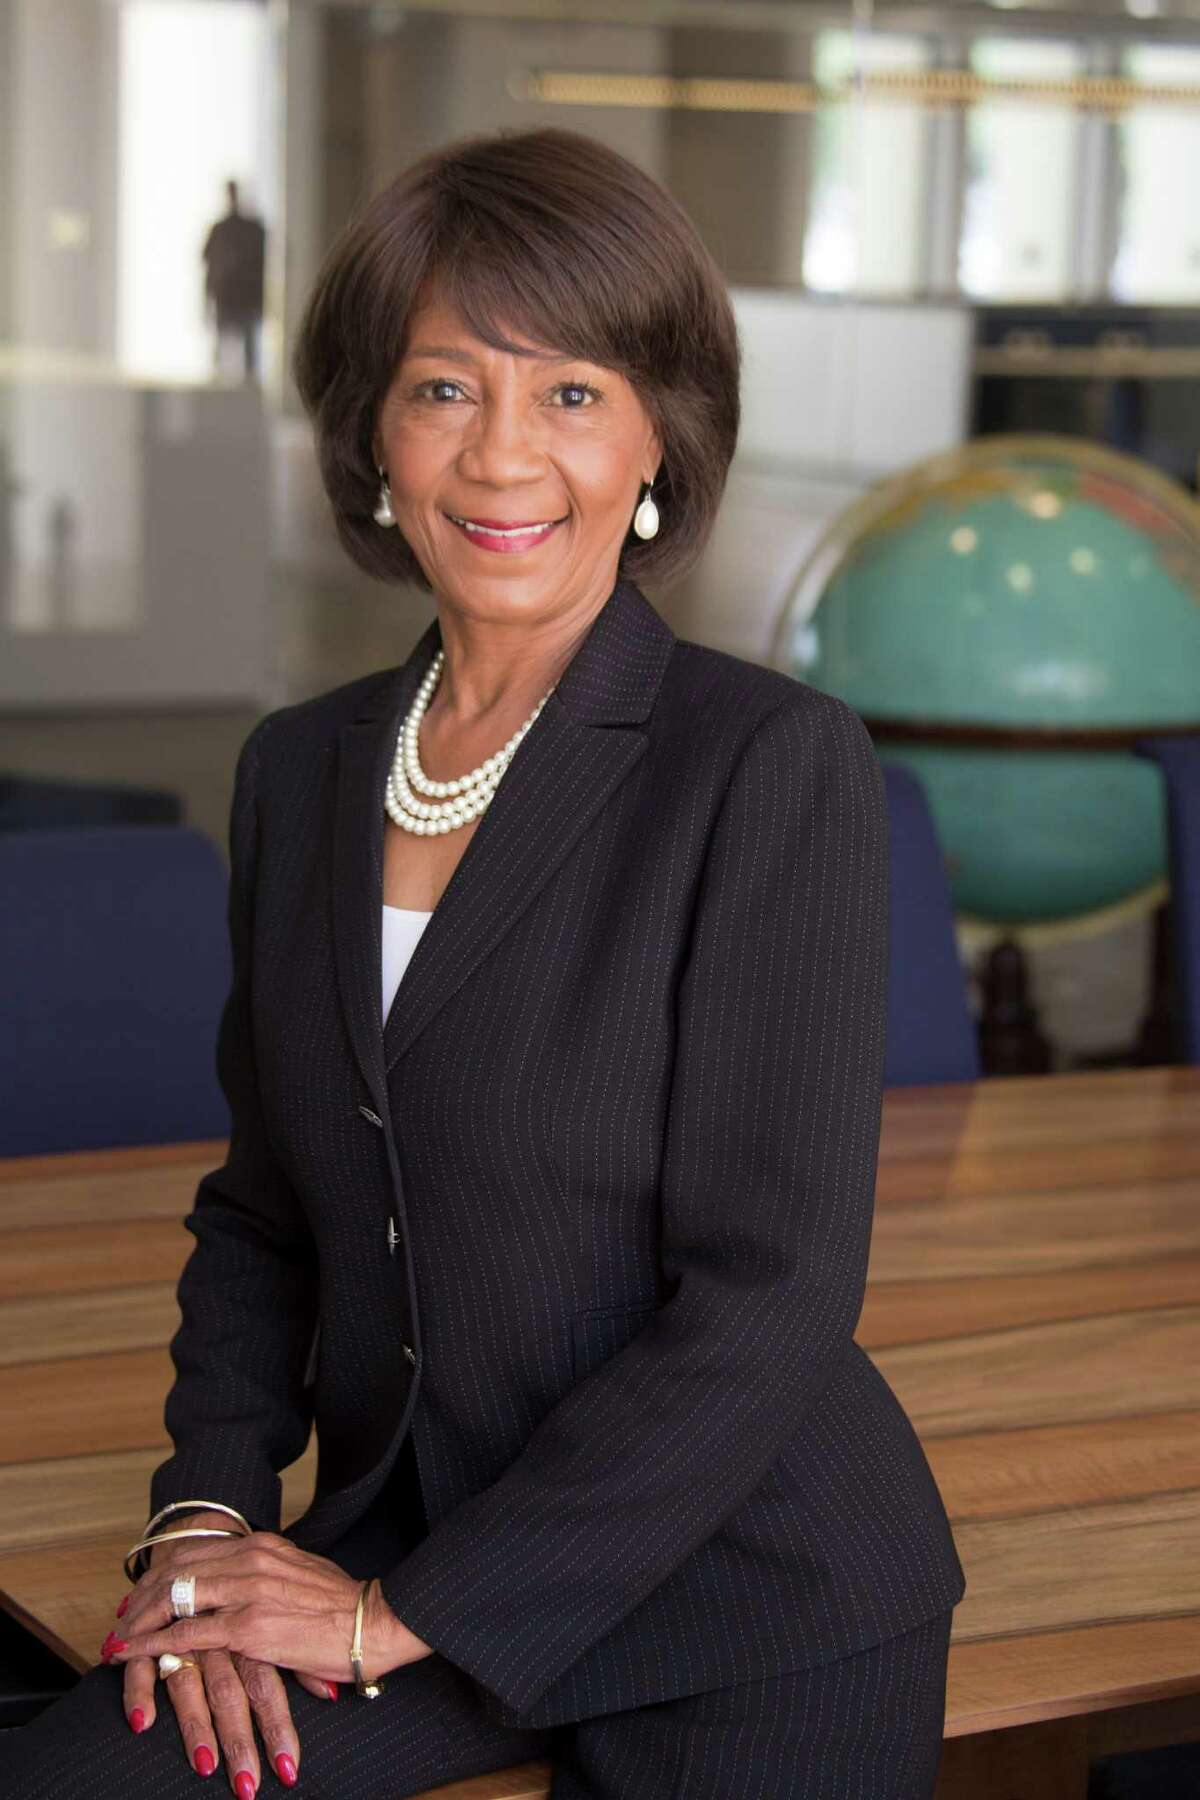 Ann Harris Bennett is a candidate running for Harris County Tax Assessor- Collector (Photo: Jeremy Carter / Houston Chronicle)